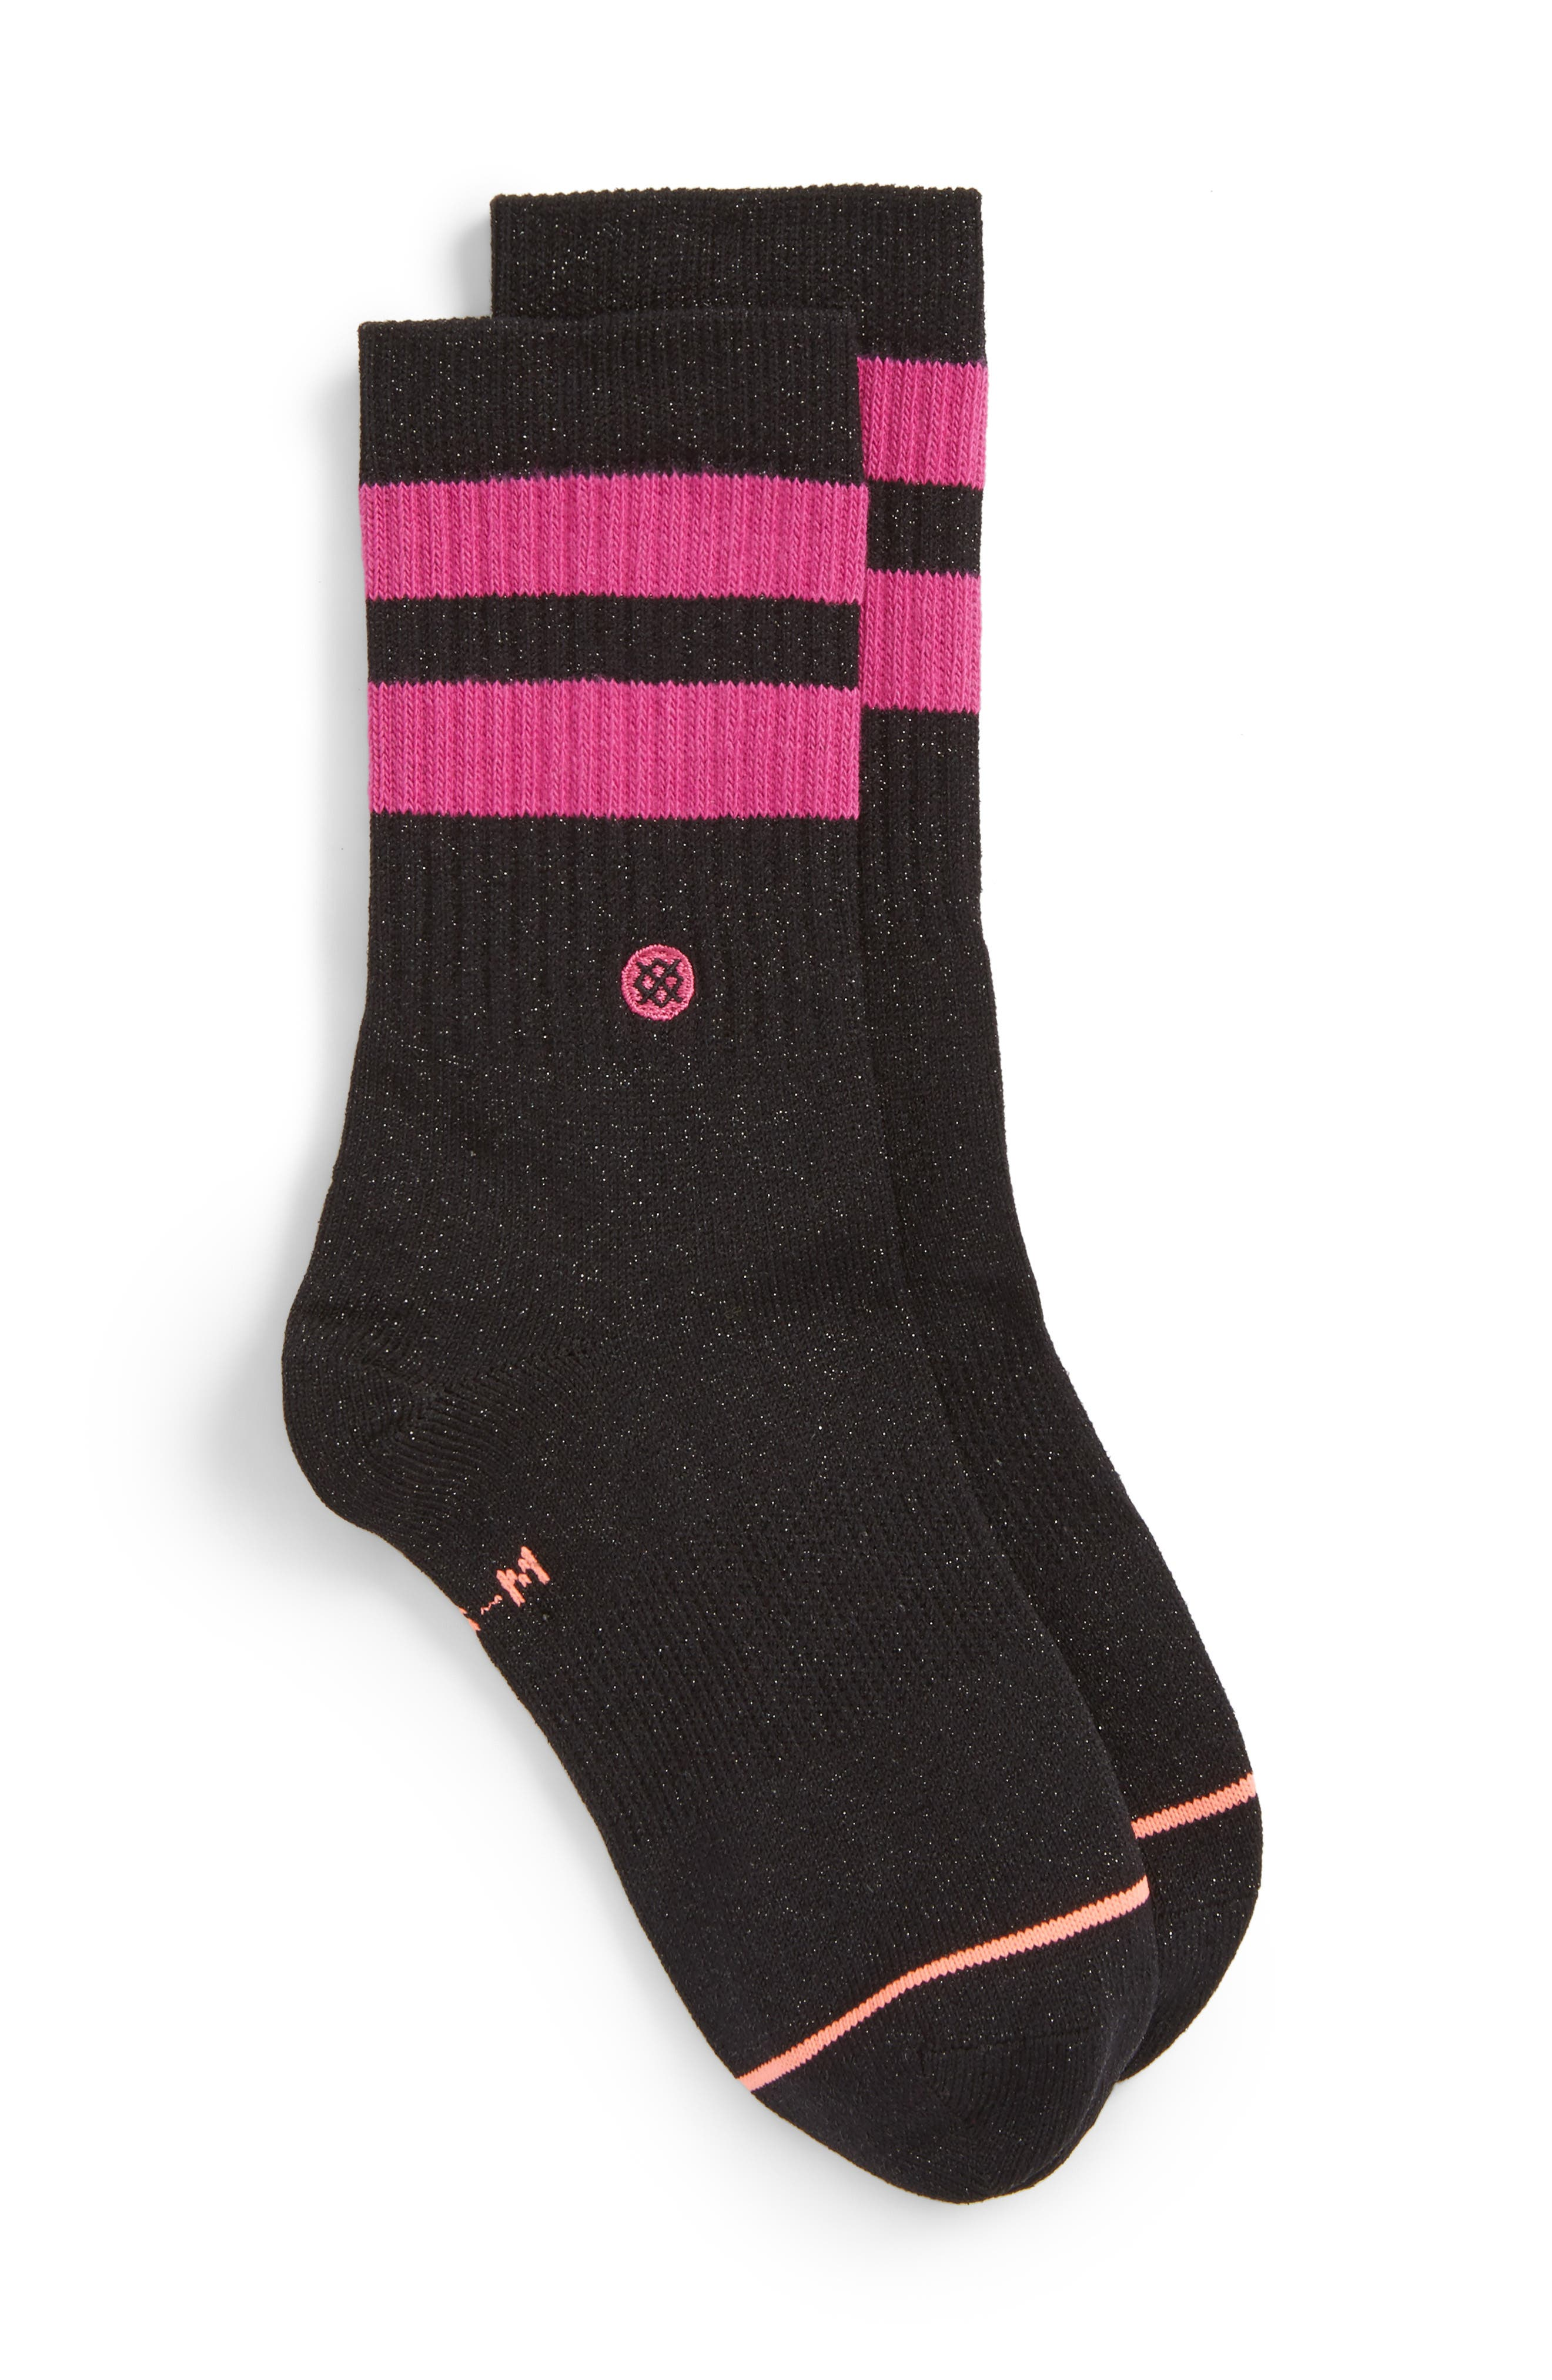 Harmony Crew Socks,                         Main,                         color, 001